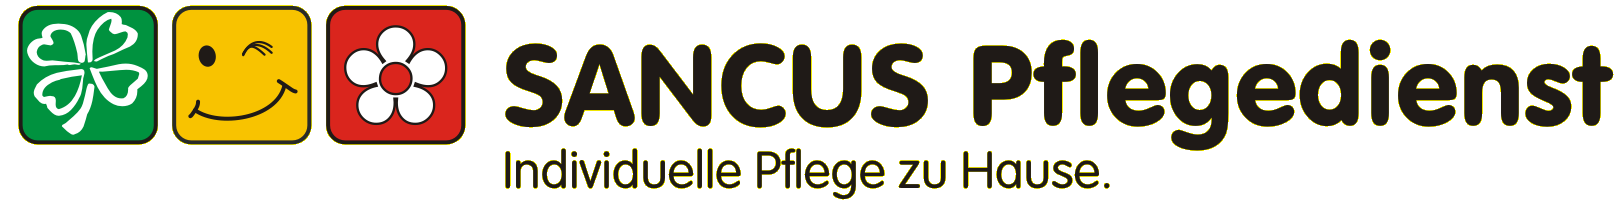 SANCUS Pflegedienst